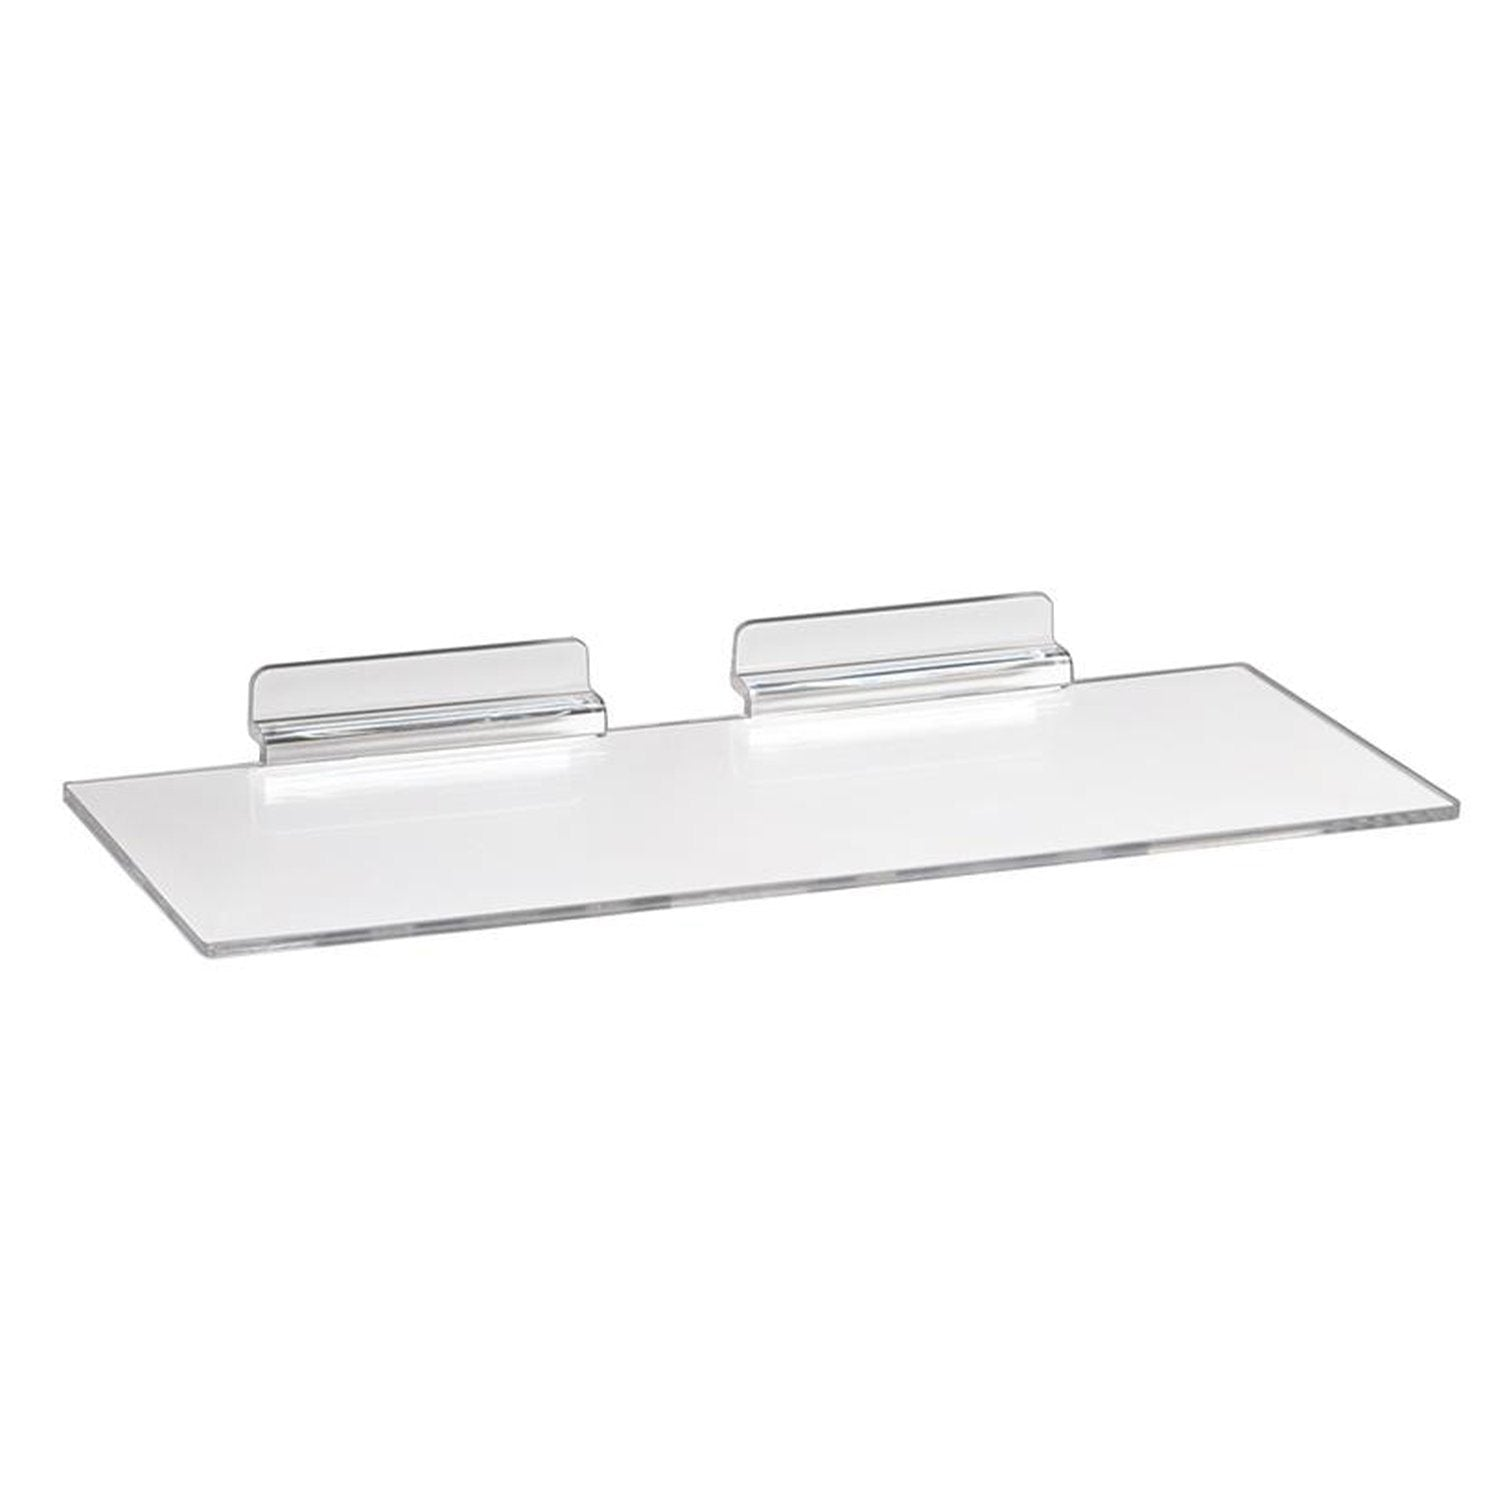 "10"" L X 4"" D Shoe Shelf, Injected Molded - Display Fixture Warehouse Retail"